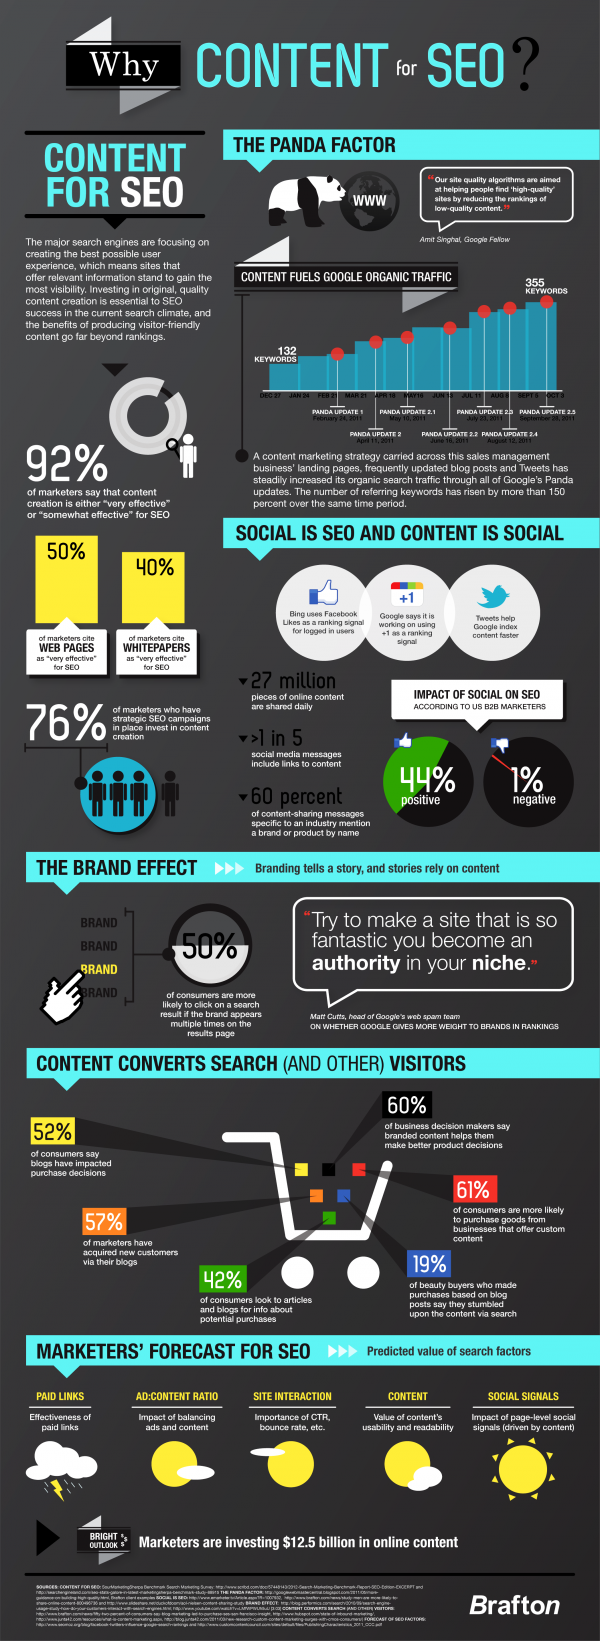 A good infographic from Brafton showing why publishing strong, consistent content on a regular basis is more important now than ever in today's competitive search and social arena.